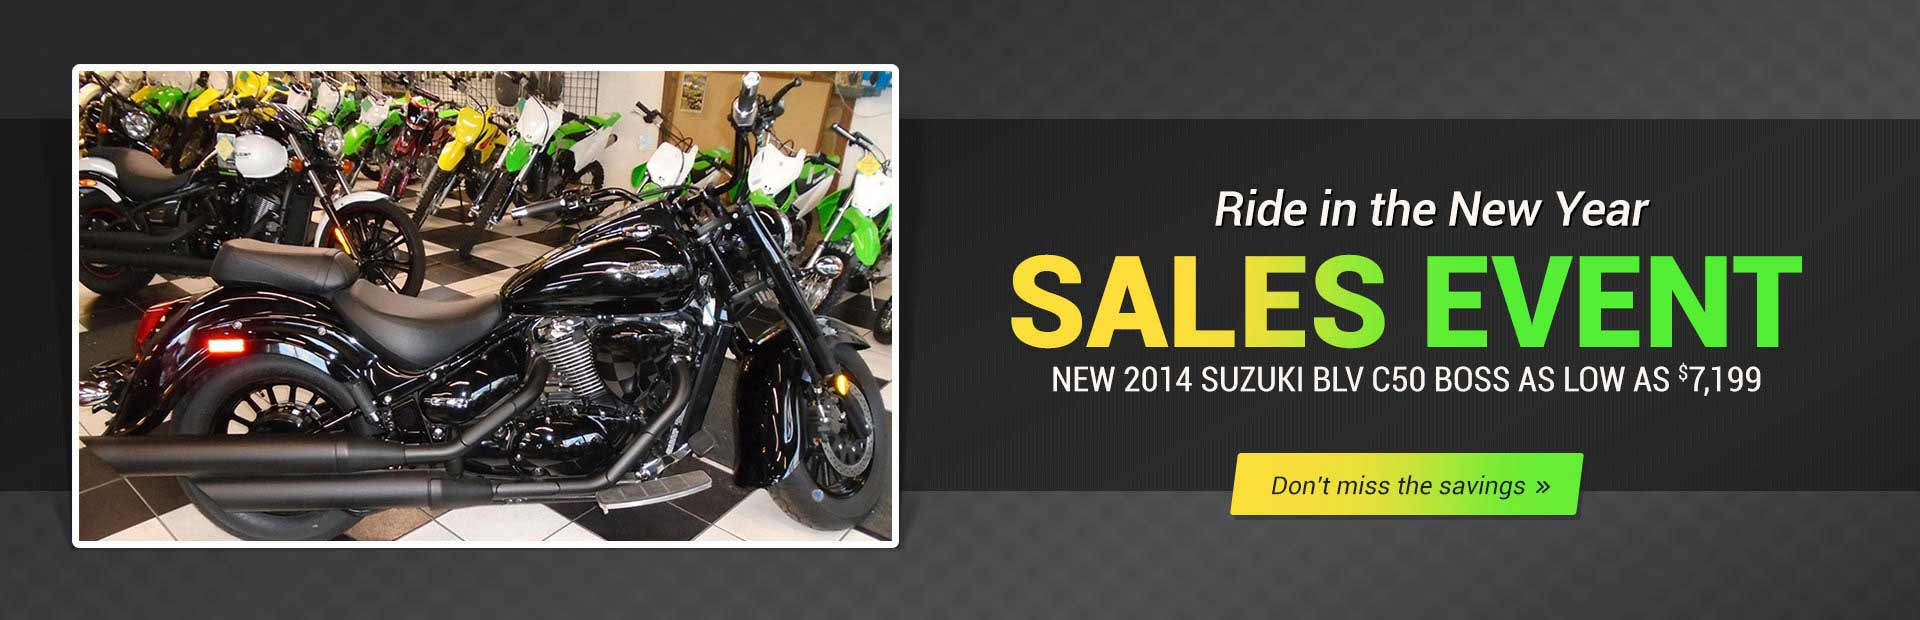 Ride in the New Year Sales Event: Get a new 2014 Suzuki Boulevard C50 BOSS as low as $7,199!